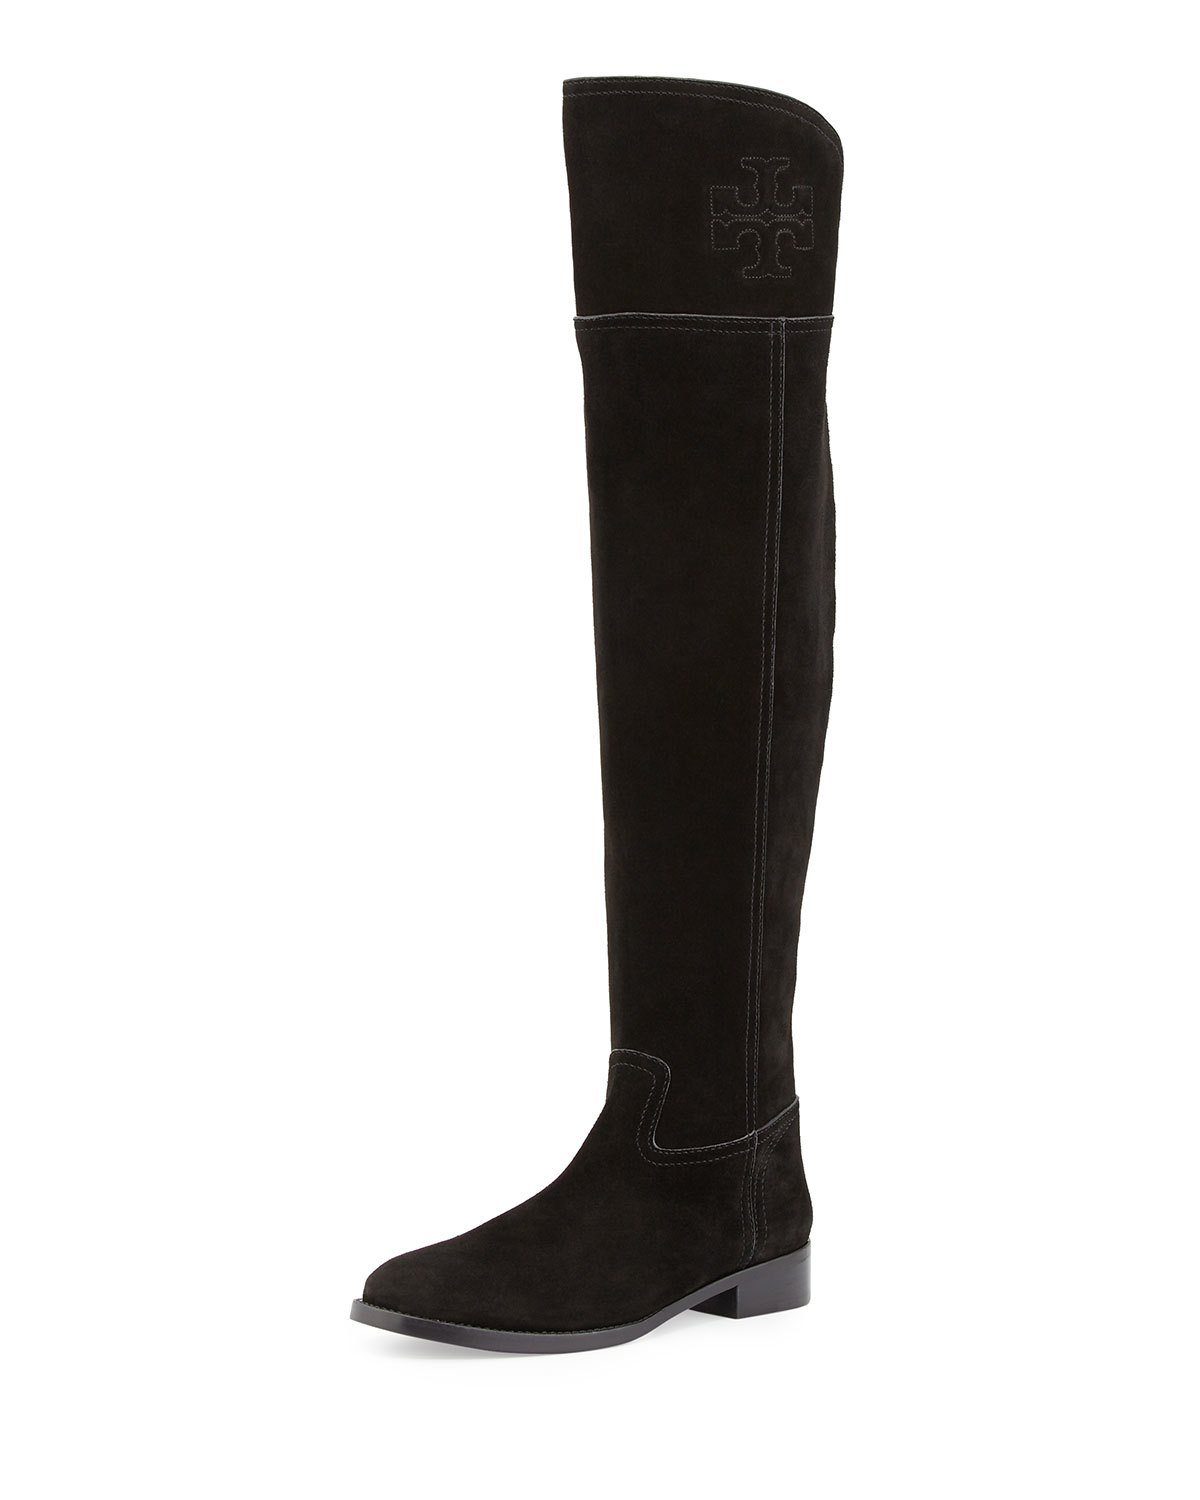 burch the knee suede boot in black lyst